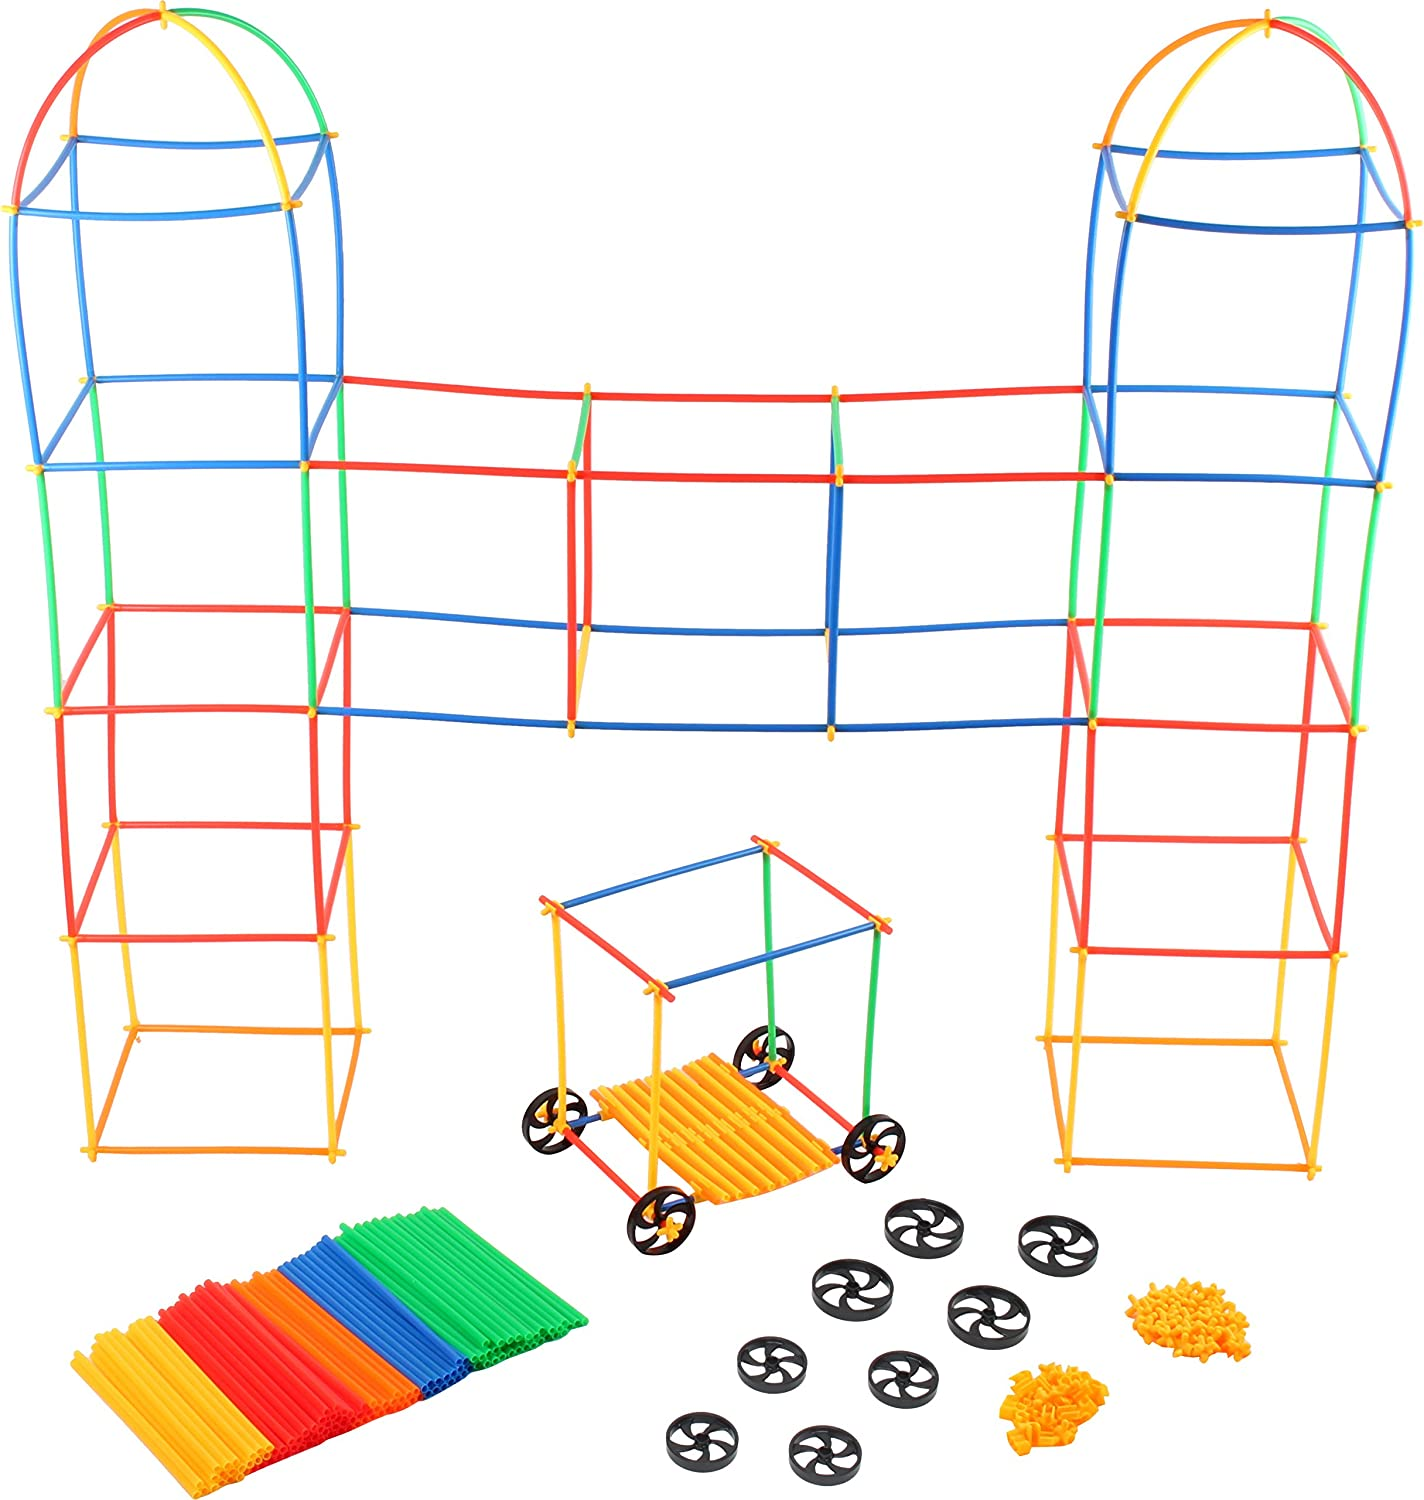 Building Toys For Kids 400 Set Straws and Connector + Wheels - Colorful and Strong Kids Construction Toys With Special Connectors - Great Gift Building Blocks For Boys And Girls - Original - By Play22 Review